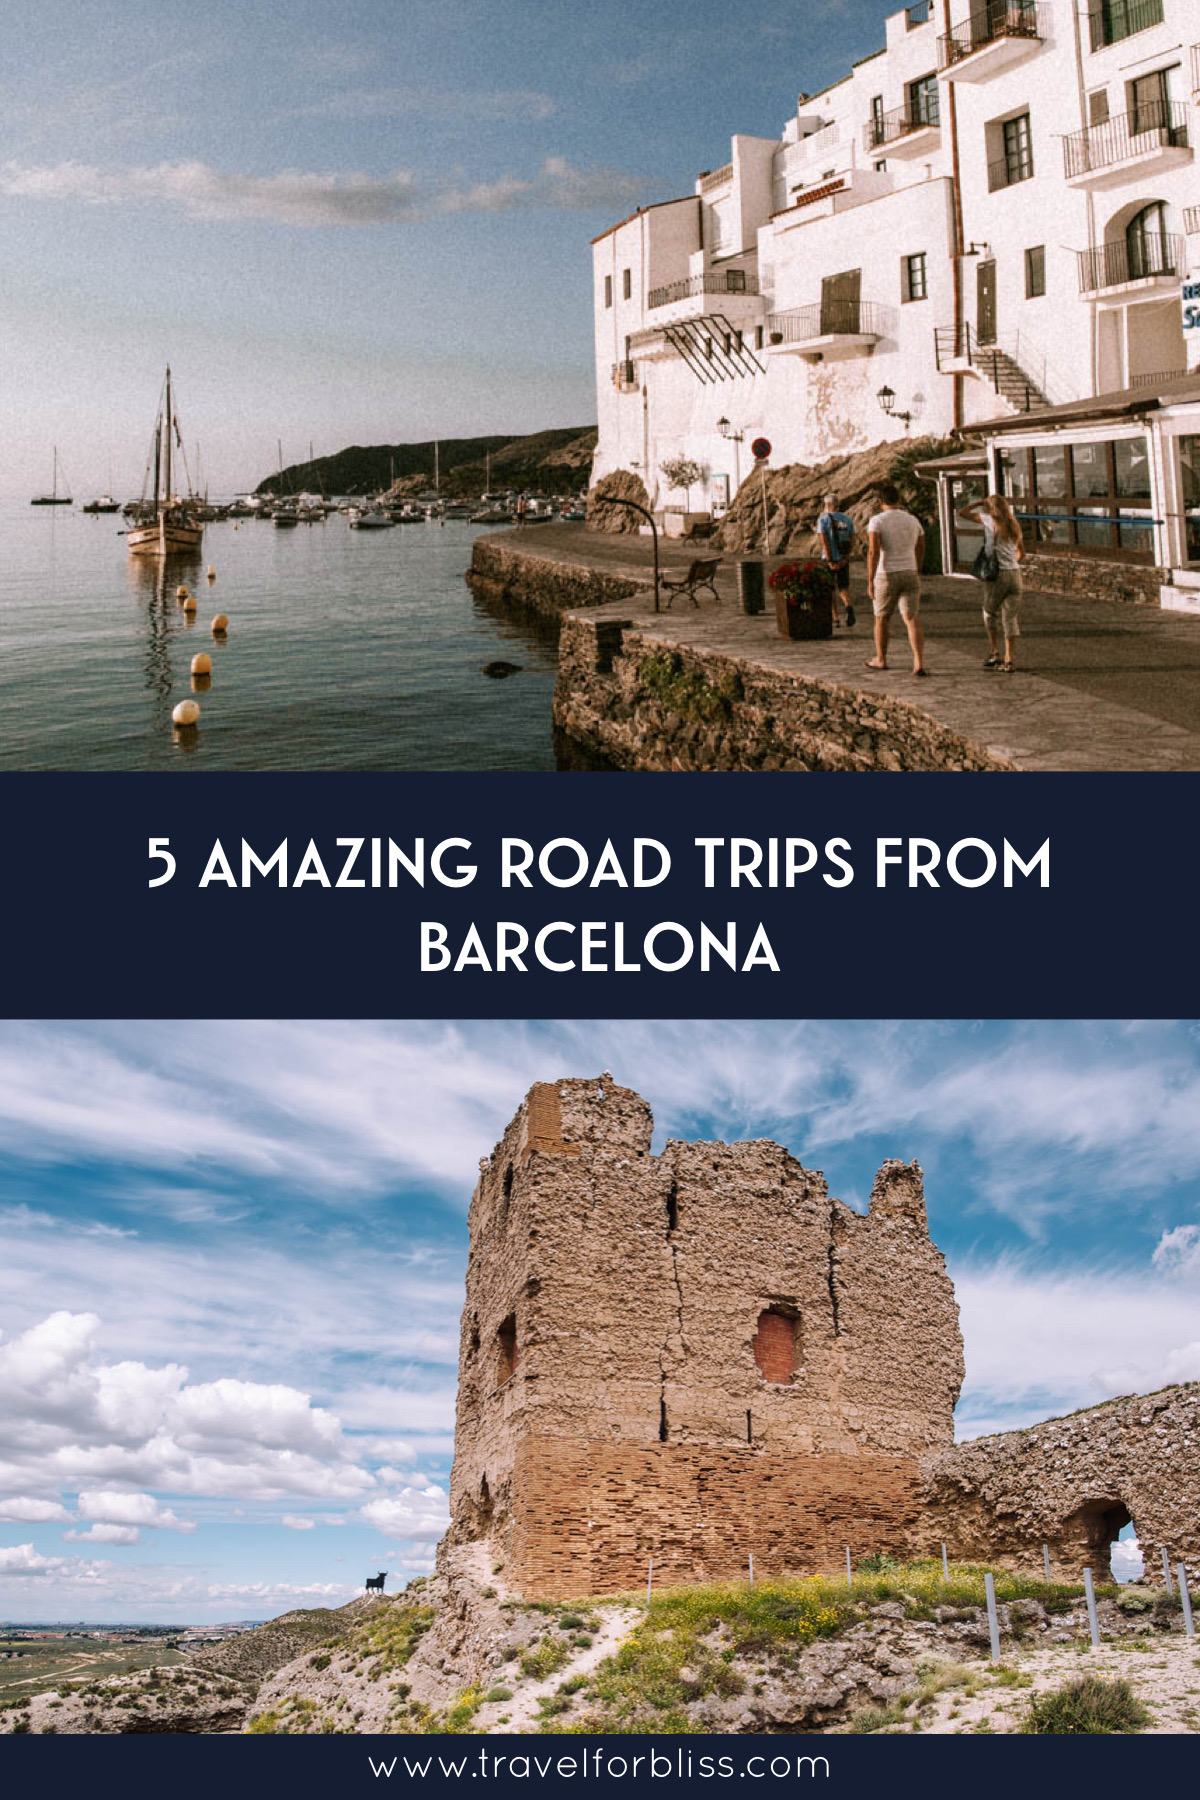 Find the perfect road trip from Barcelona. You can choose what type of experience you will have. All road trips will show you a local side of Barcelona. Discover beautiful beaches, delicious food, and historic towns on your Spanish road trip.